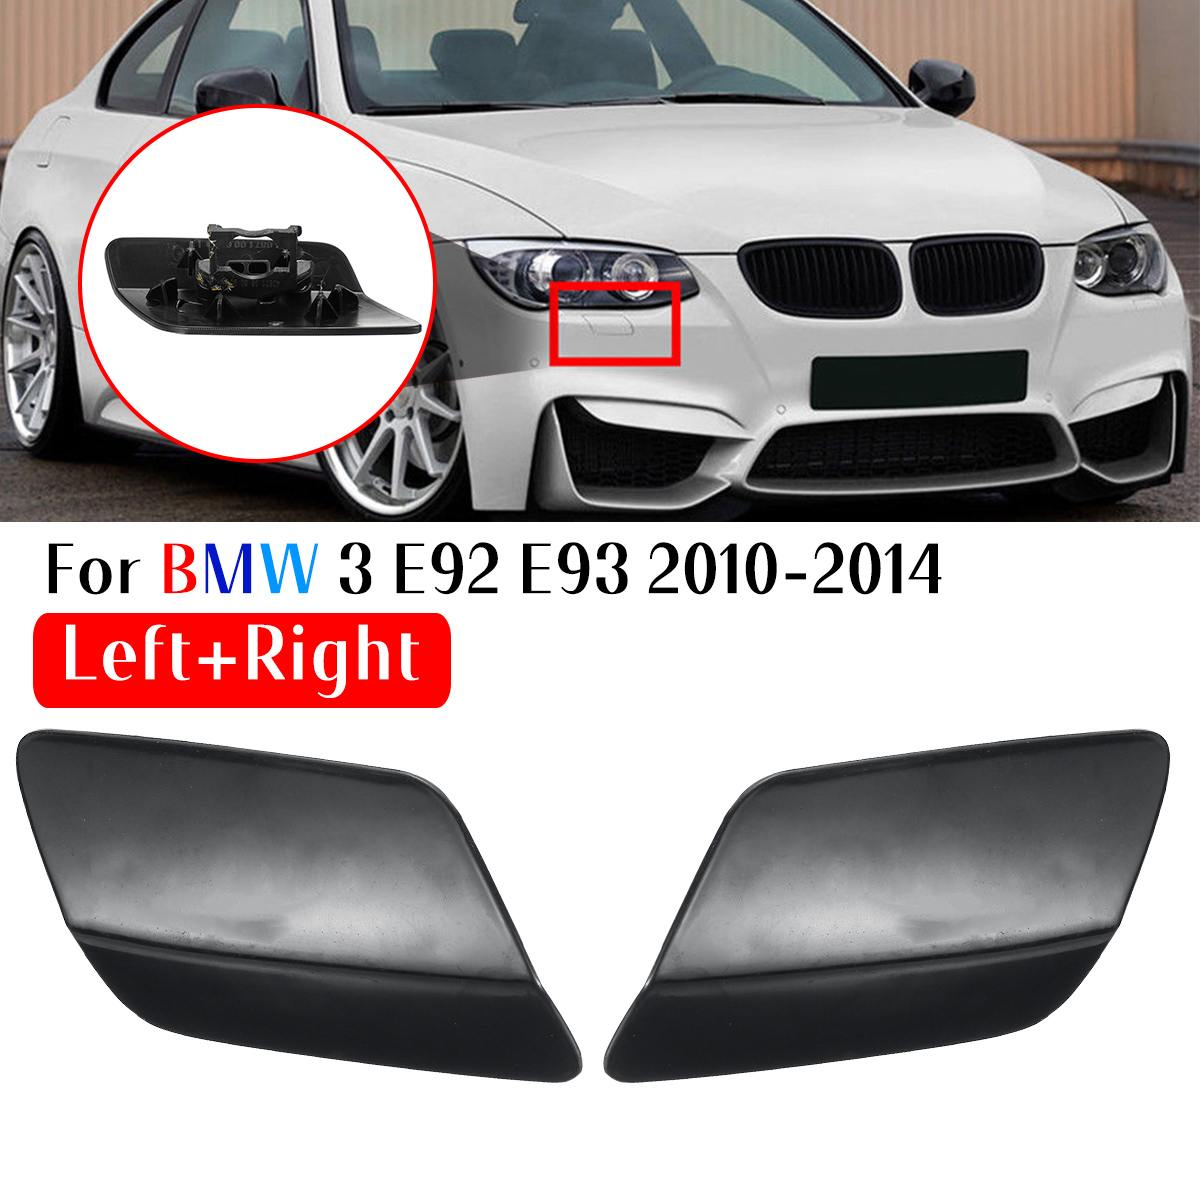 1 Pair Left/Right Black Bumper Headlight Washer Jet Cover Cap For Bmw 3 E92 E93 2010 2011 2012 2013 2014 Coupe Convertible